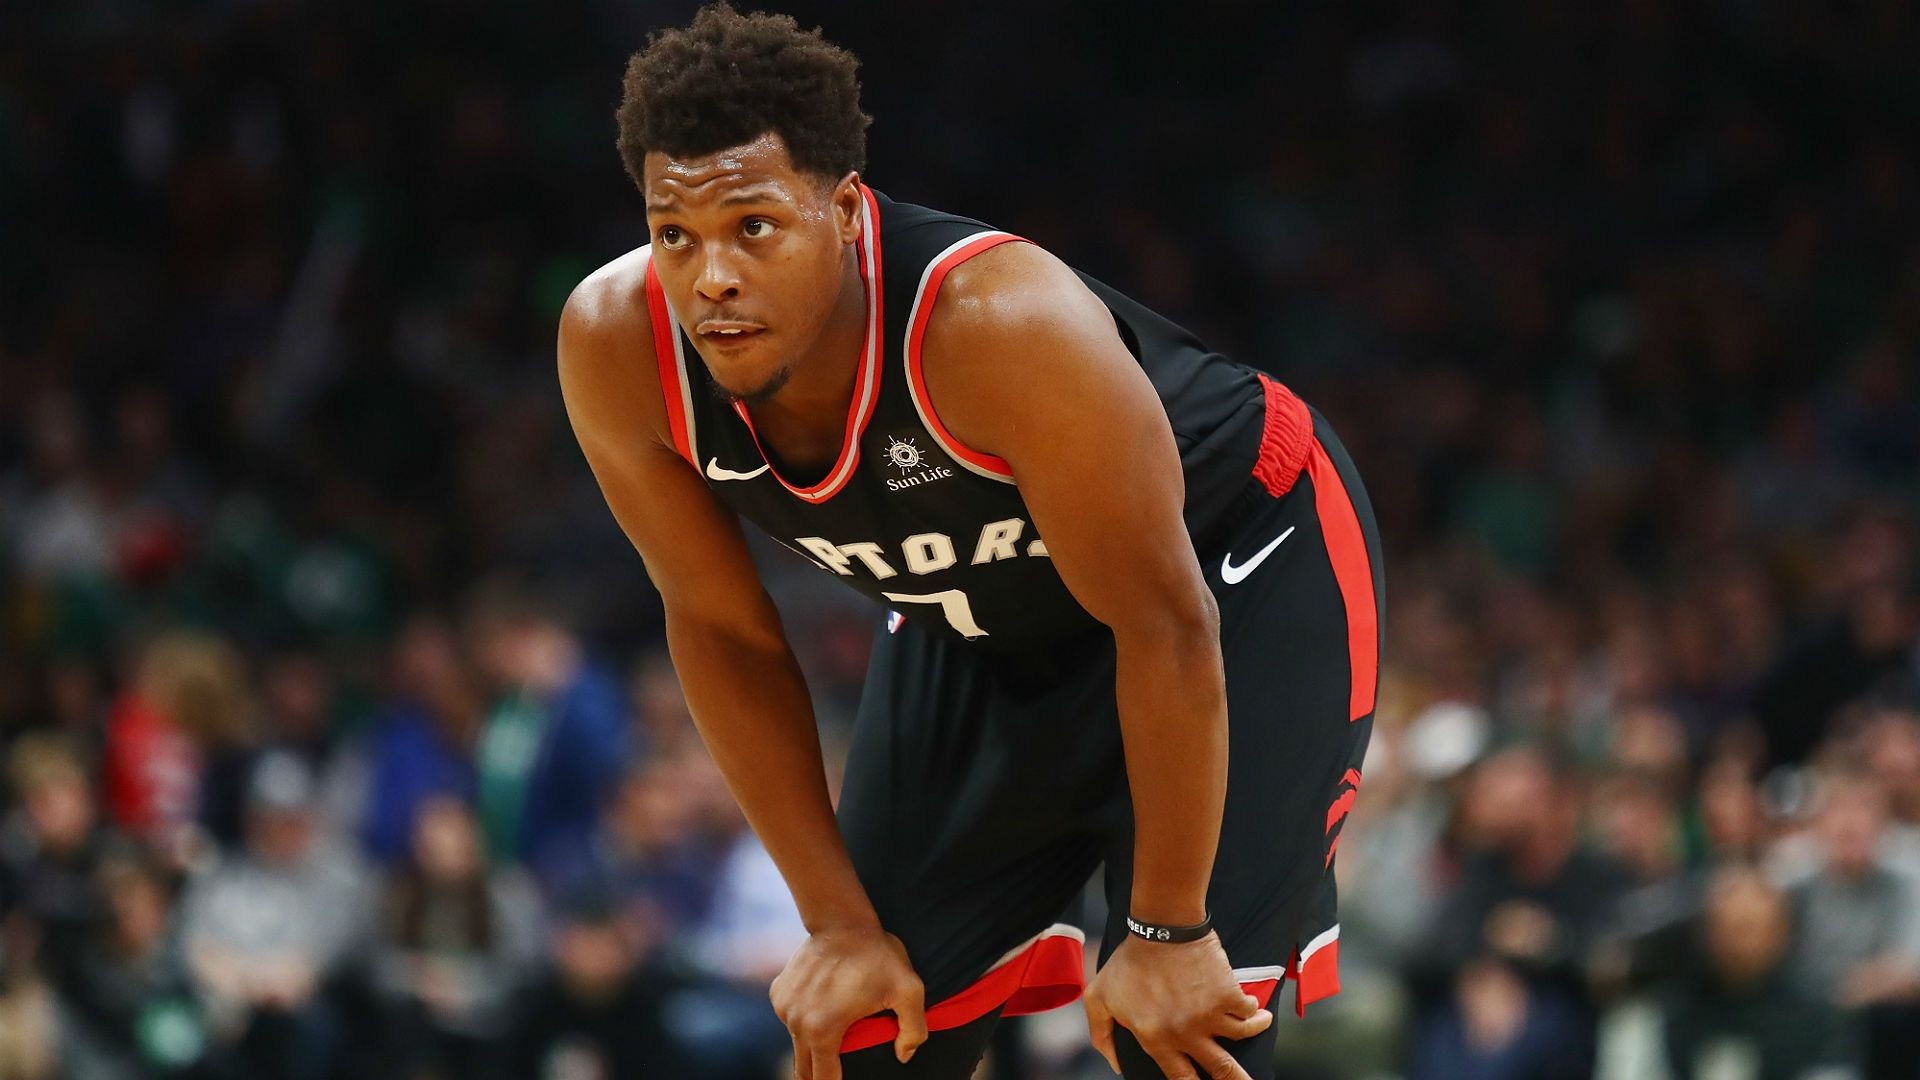 NBA Injury Report: Lowry Undergoes Thumb Surgery While Mavs Announce Load Management Plan For Porzingis